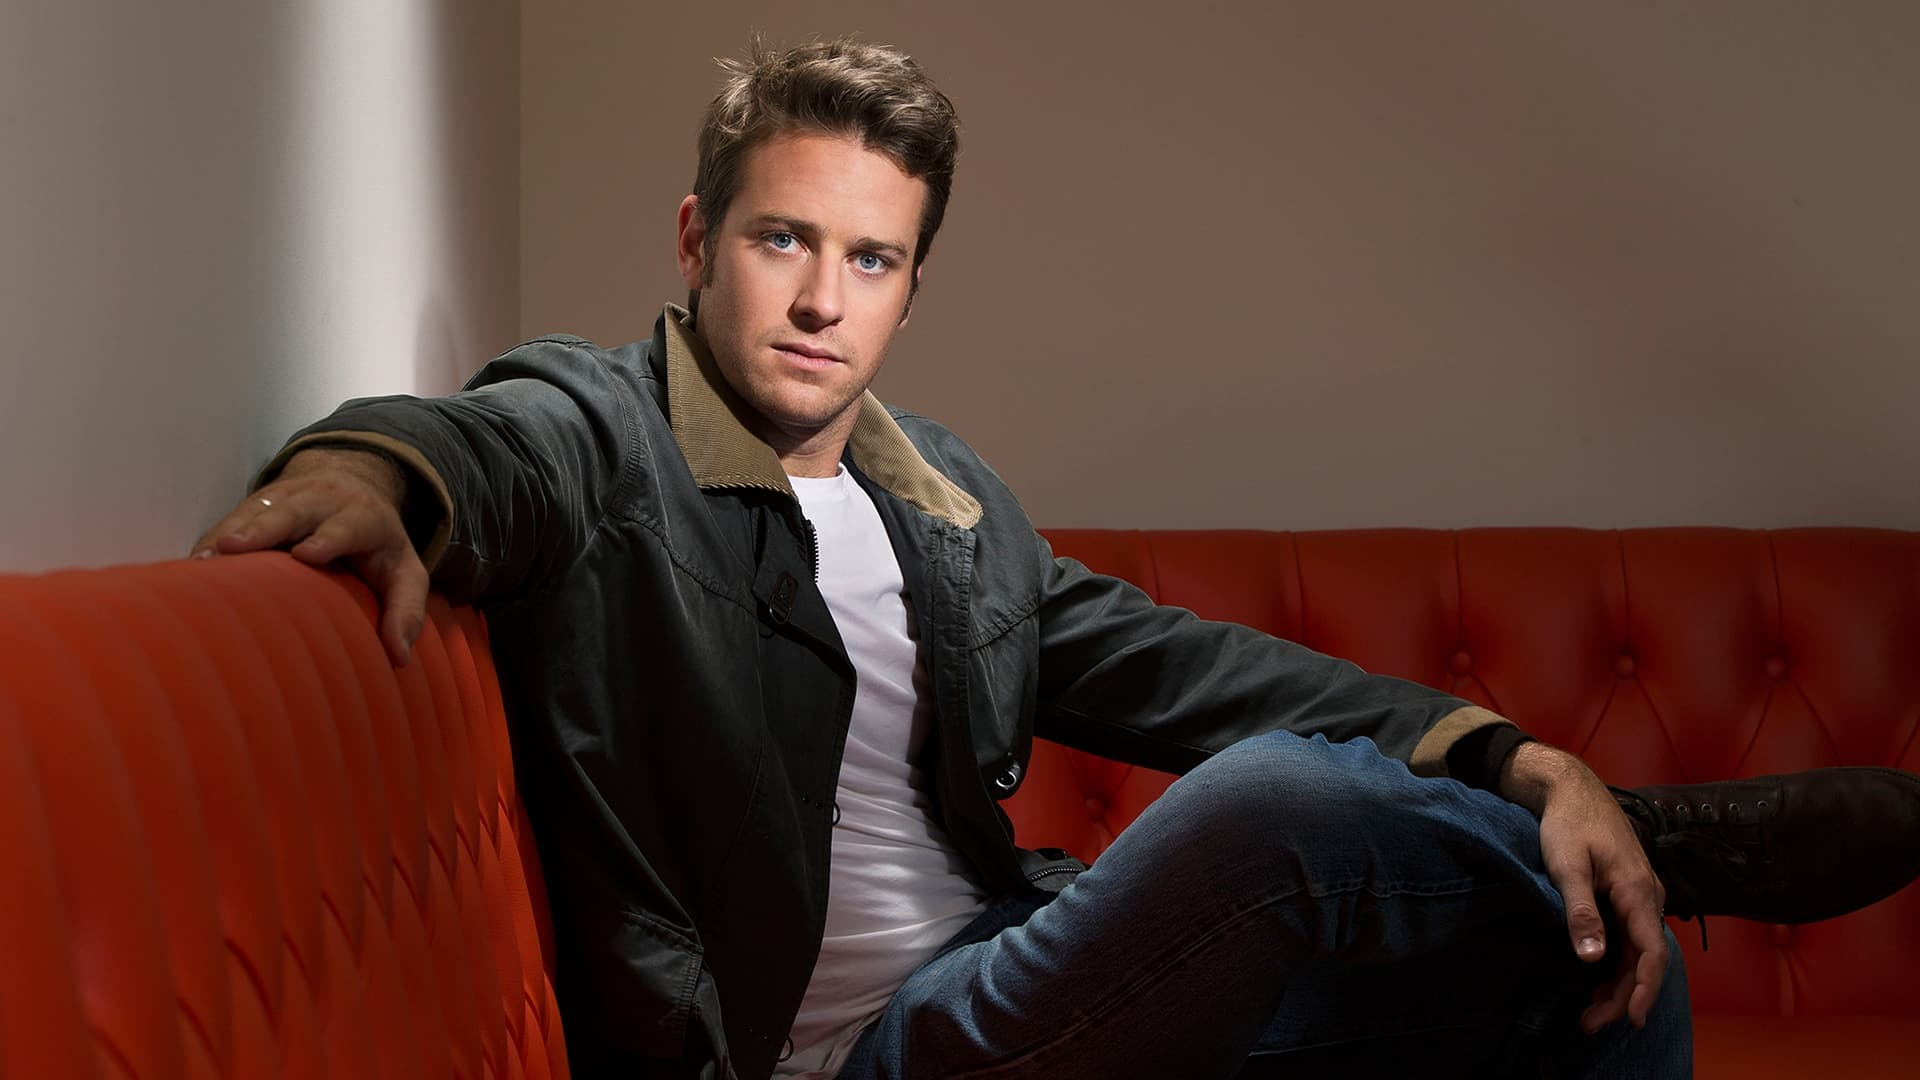 Full Hd Wallpaper For Laptop 14 Hd Armie Hammer Wallpapers